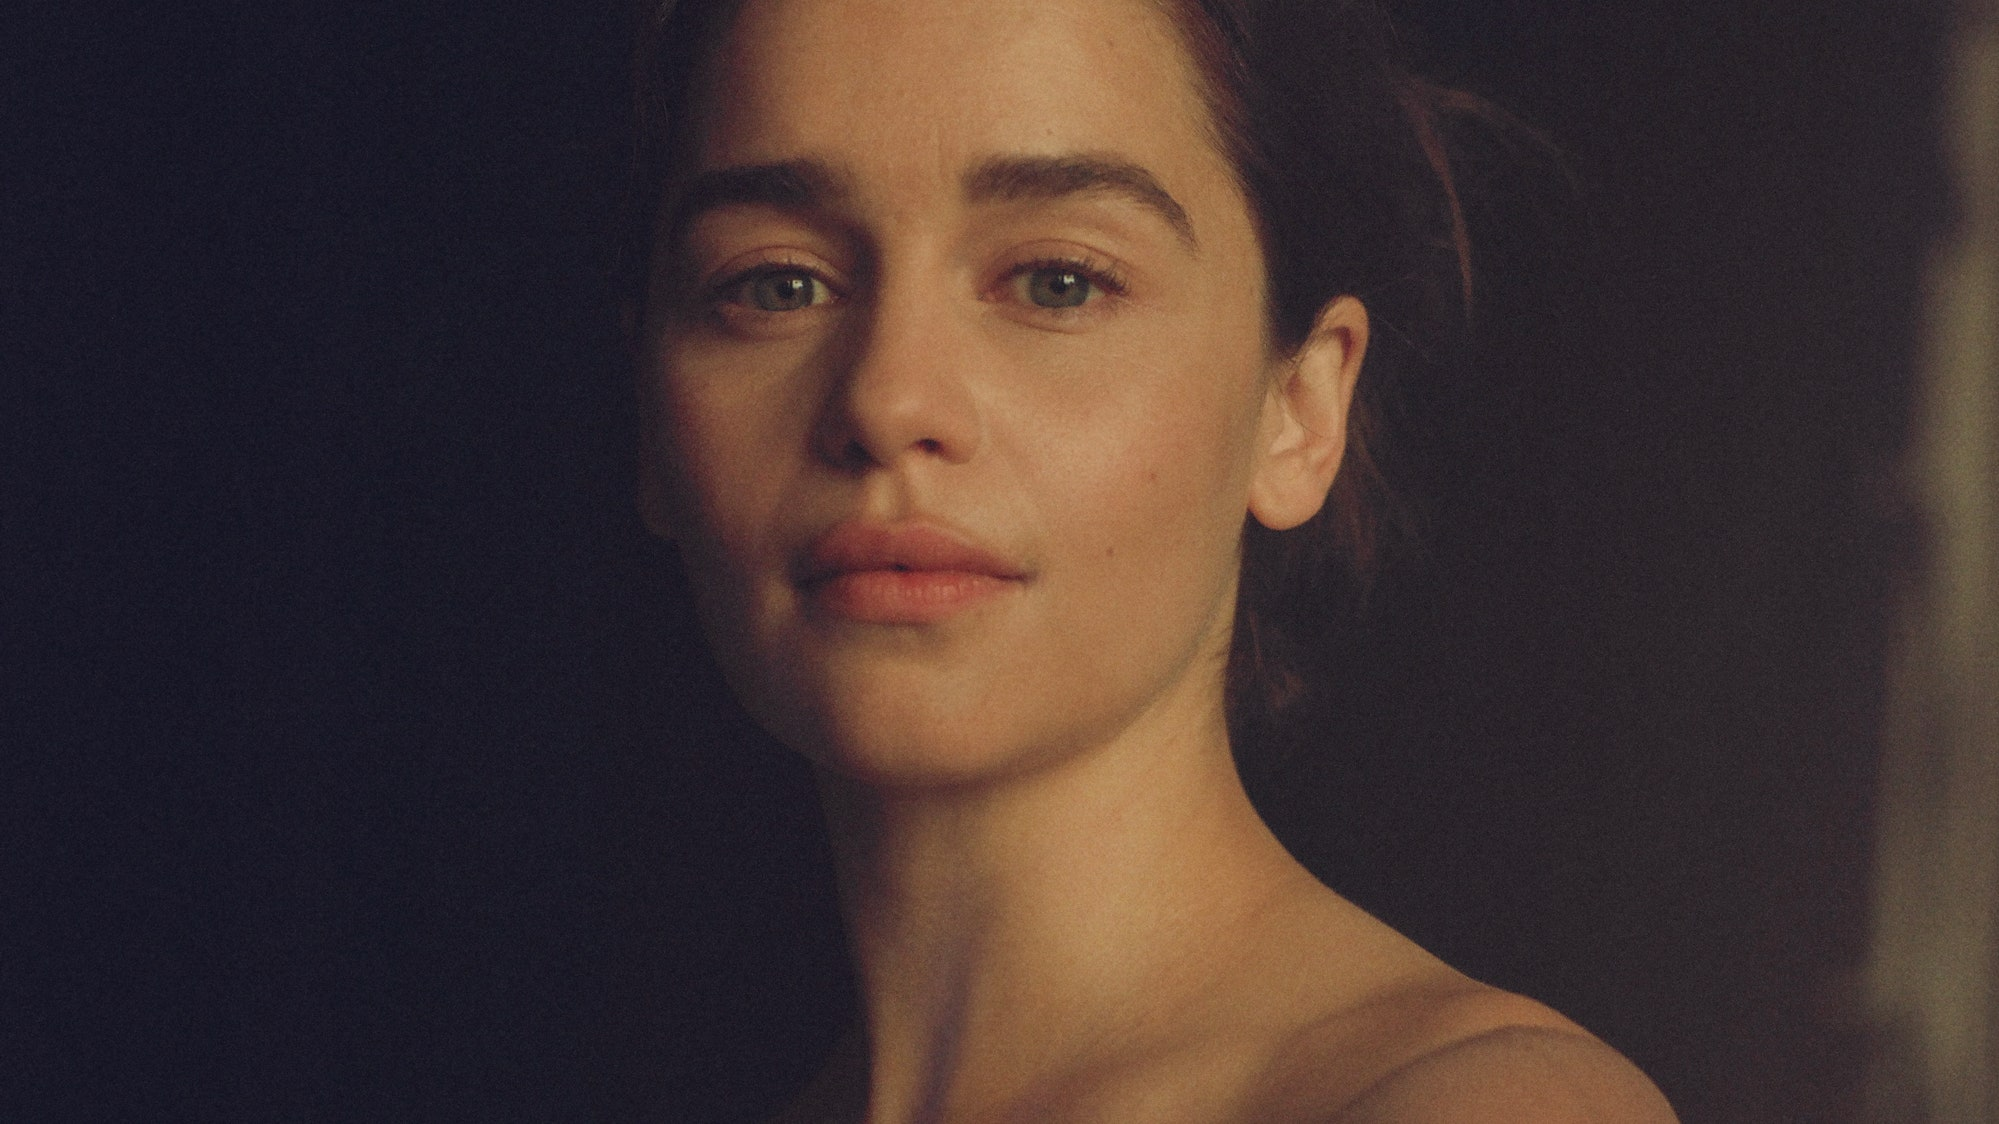 """""""emilia-clarke-says-she-was-told-she-needed-fillers-in-her-face-heres-how-she-reacted"""""""